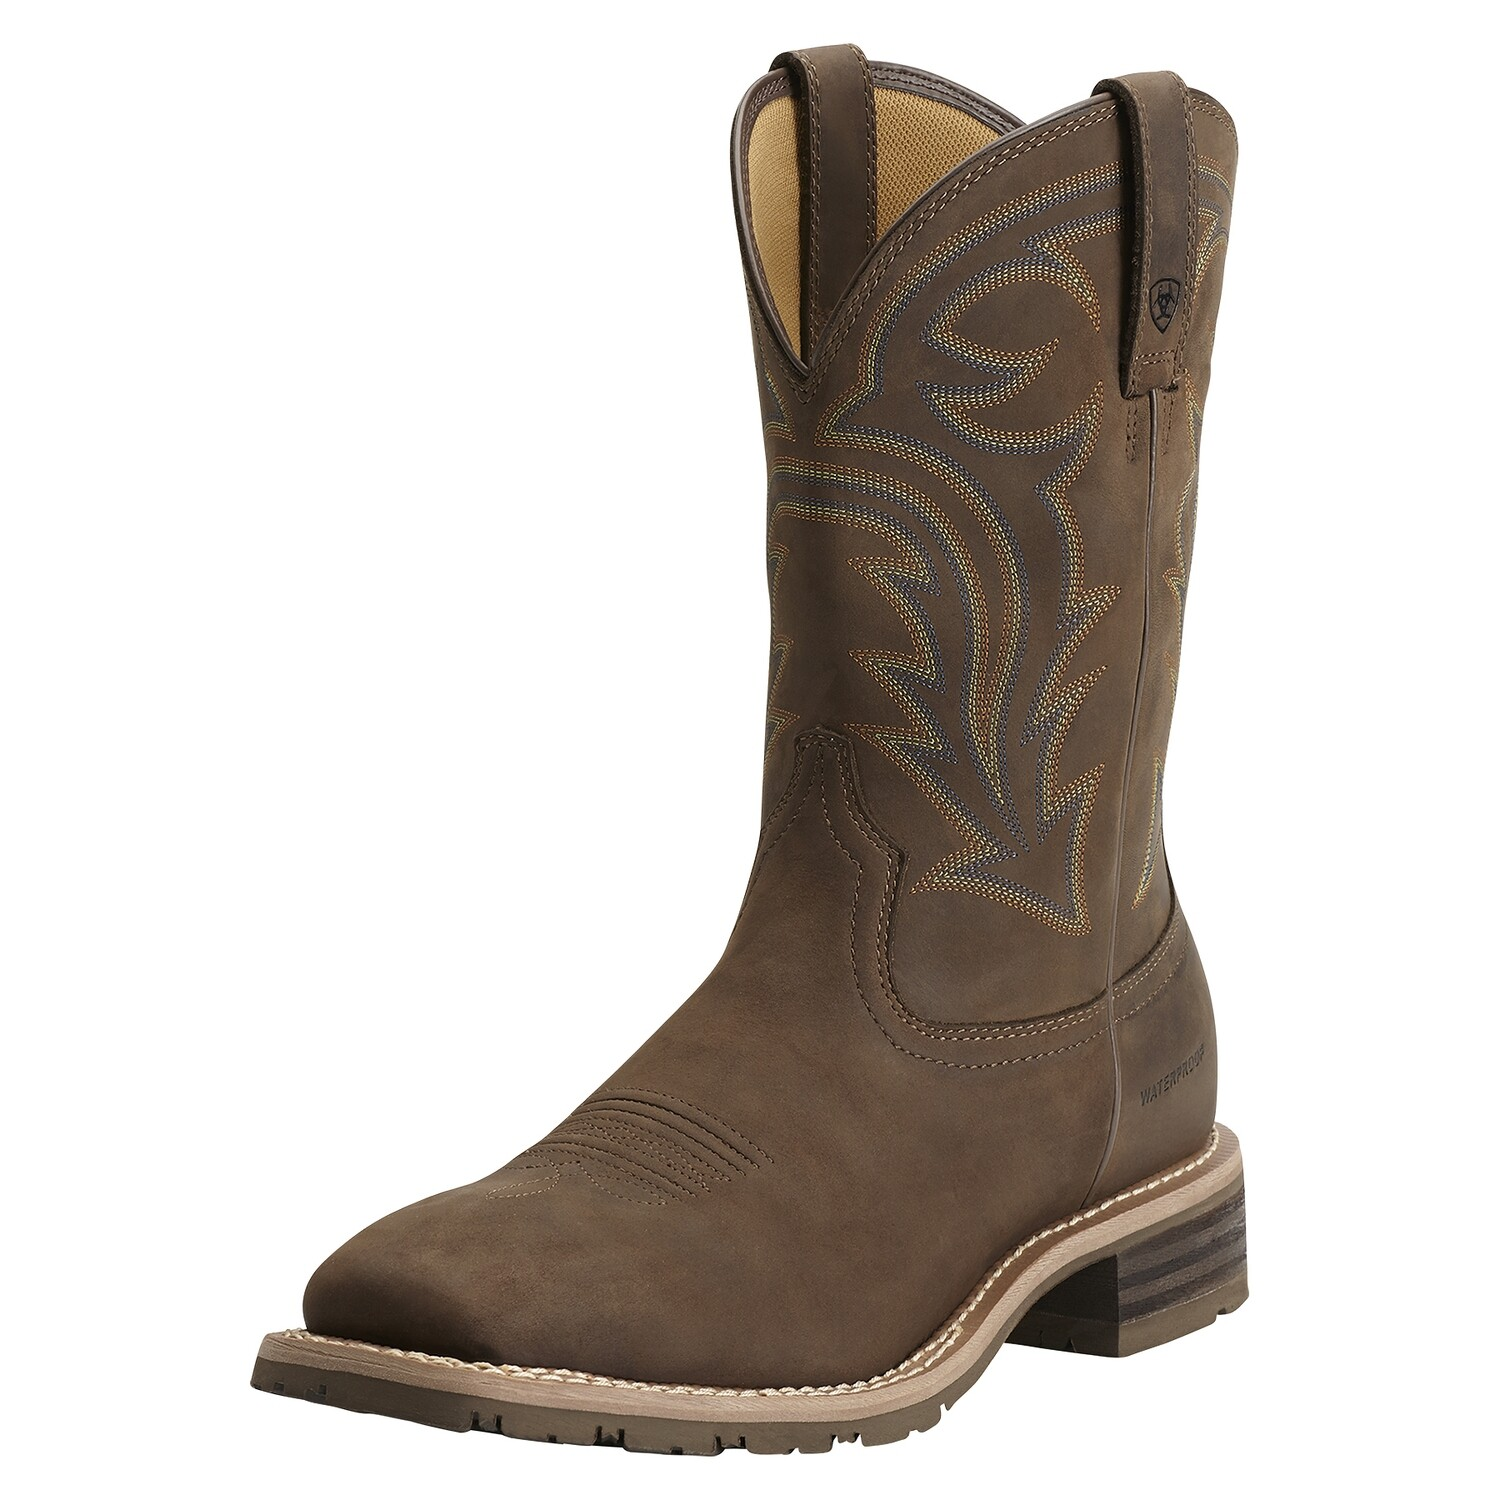 10014067 MNS HYBRID RANCHER H2O OILY DIST BROWN